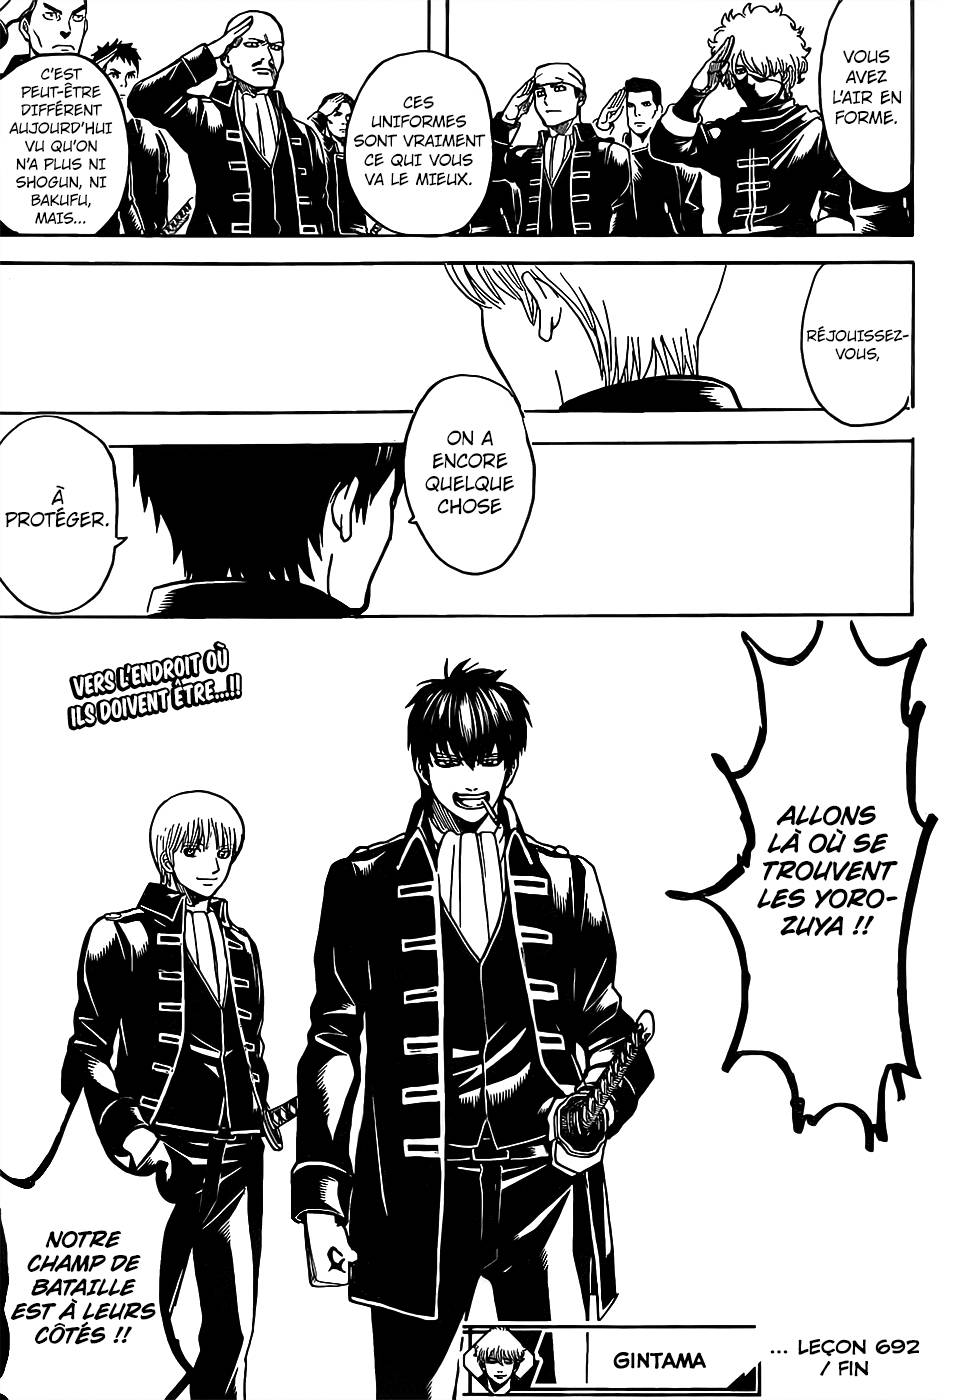 Lecture en ligne Gintama 692 page 22